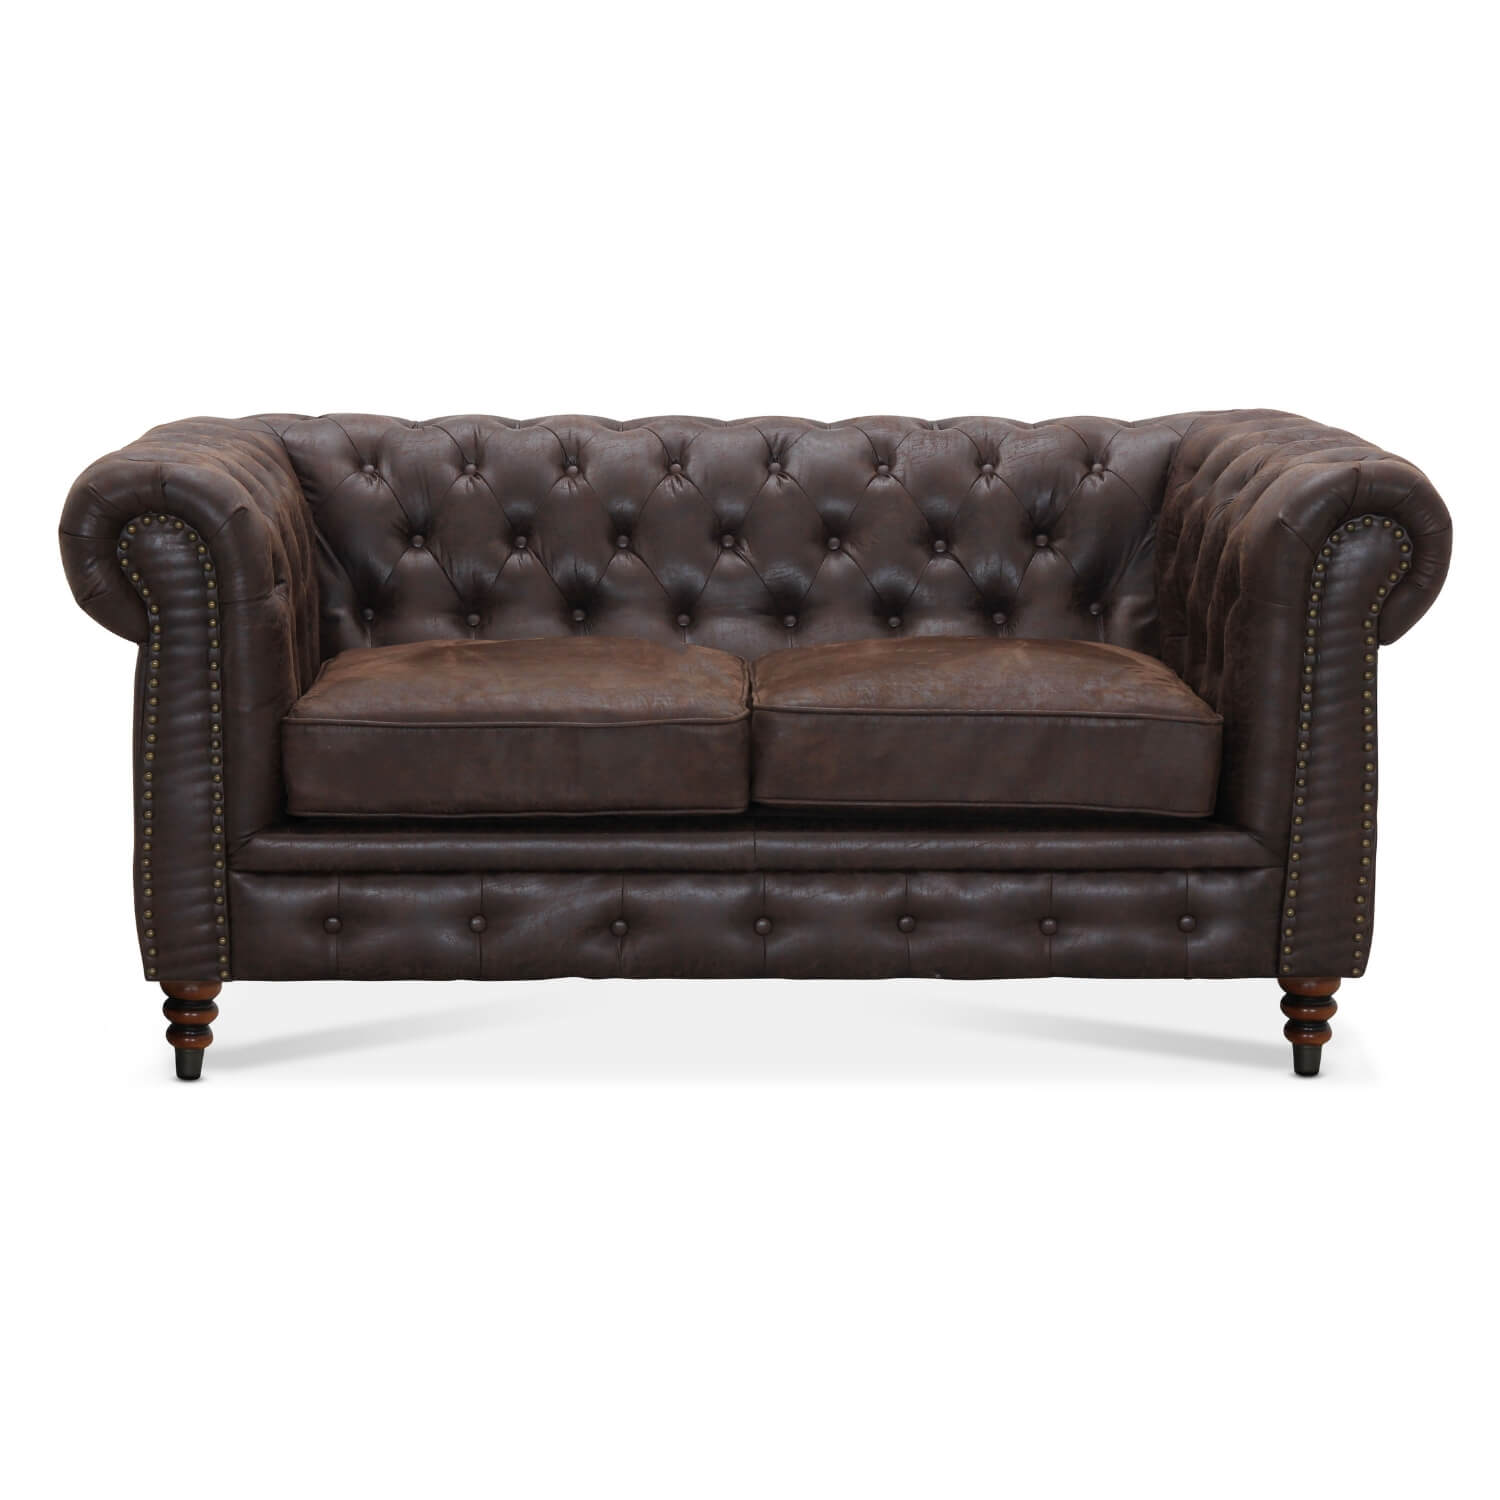 Cambridge 2 pers. chesterfield sofa - brun